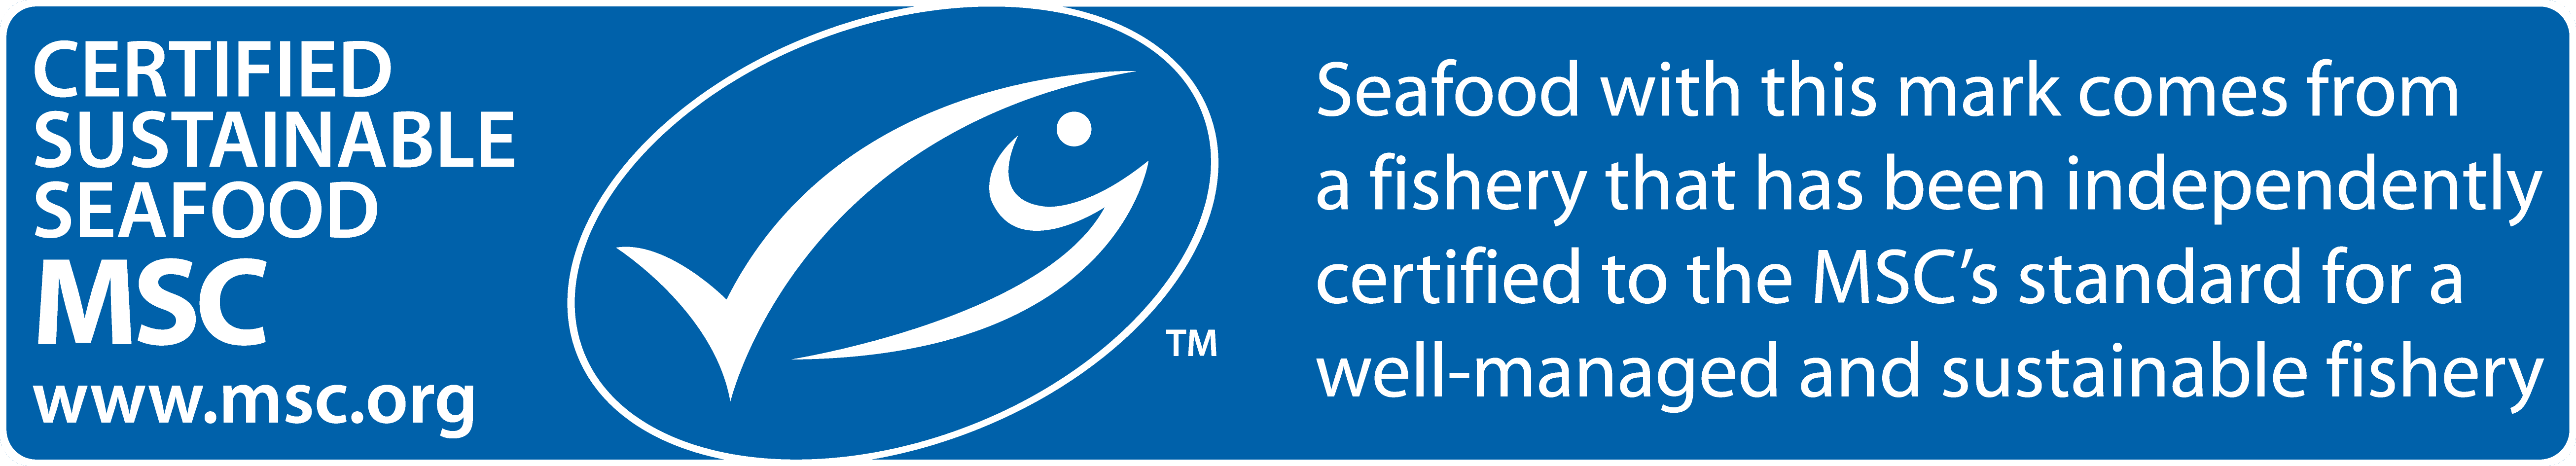 MSC Certification ecolabel